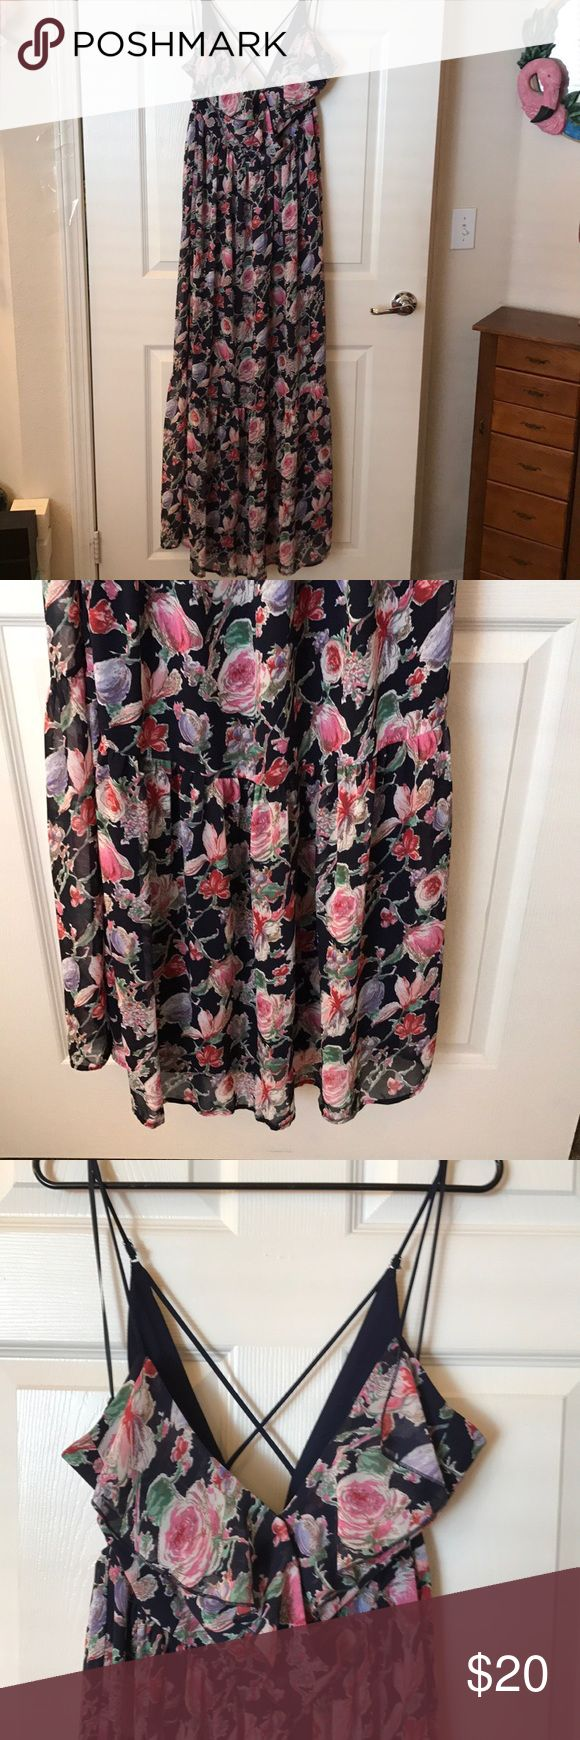 Adelyn Rae dress Brand new with tags size large gorgeous maxi dress (Nordstrom). Adelyn Rae Dresses Maxi